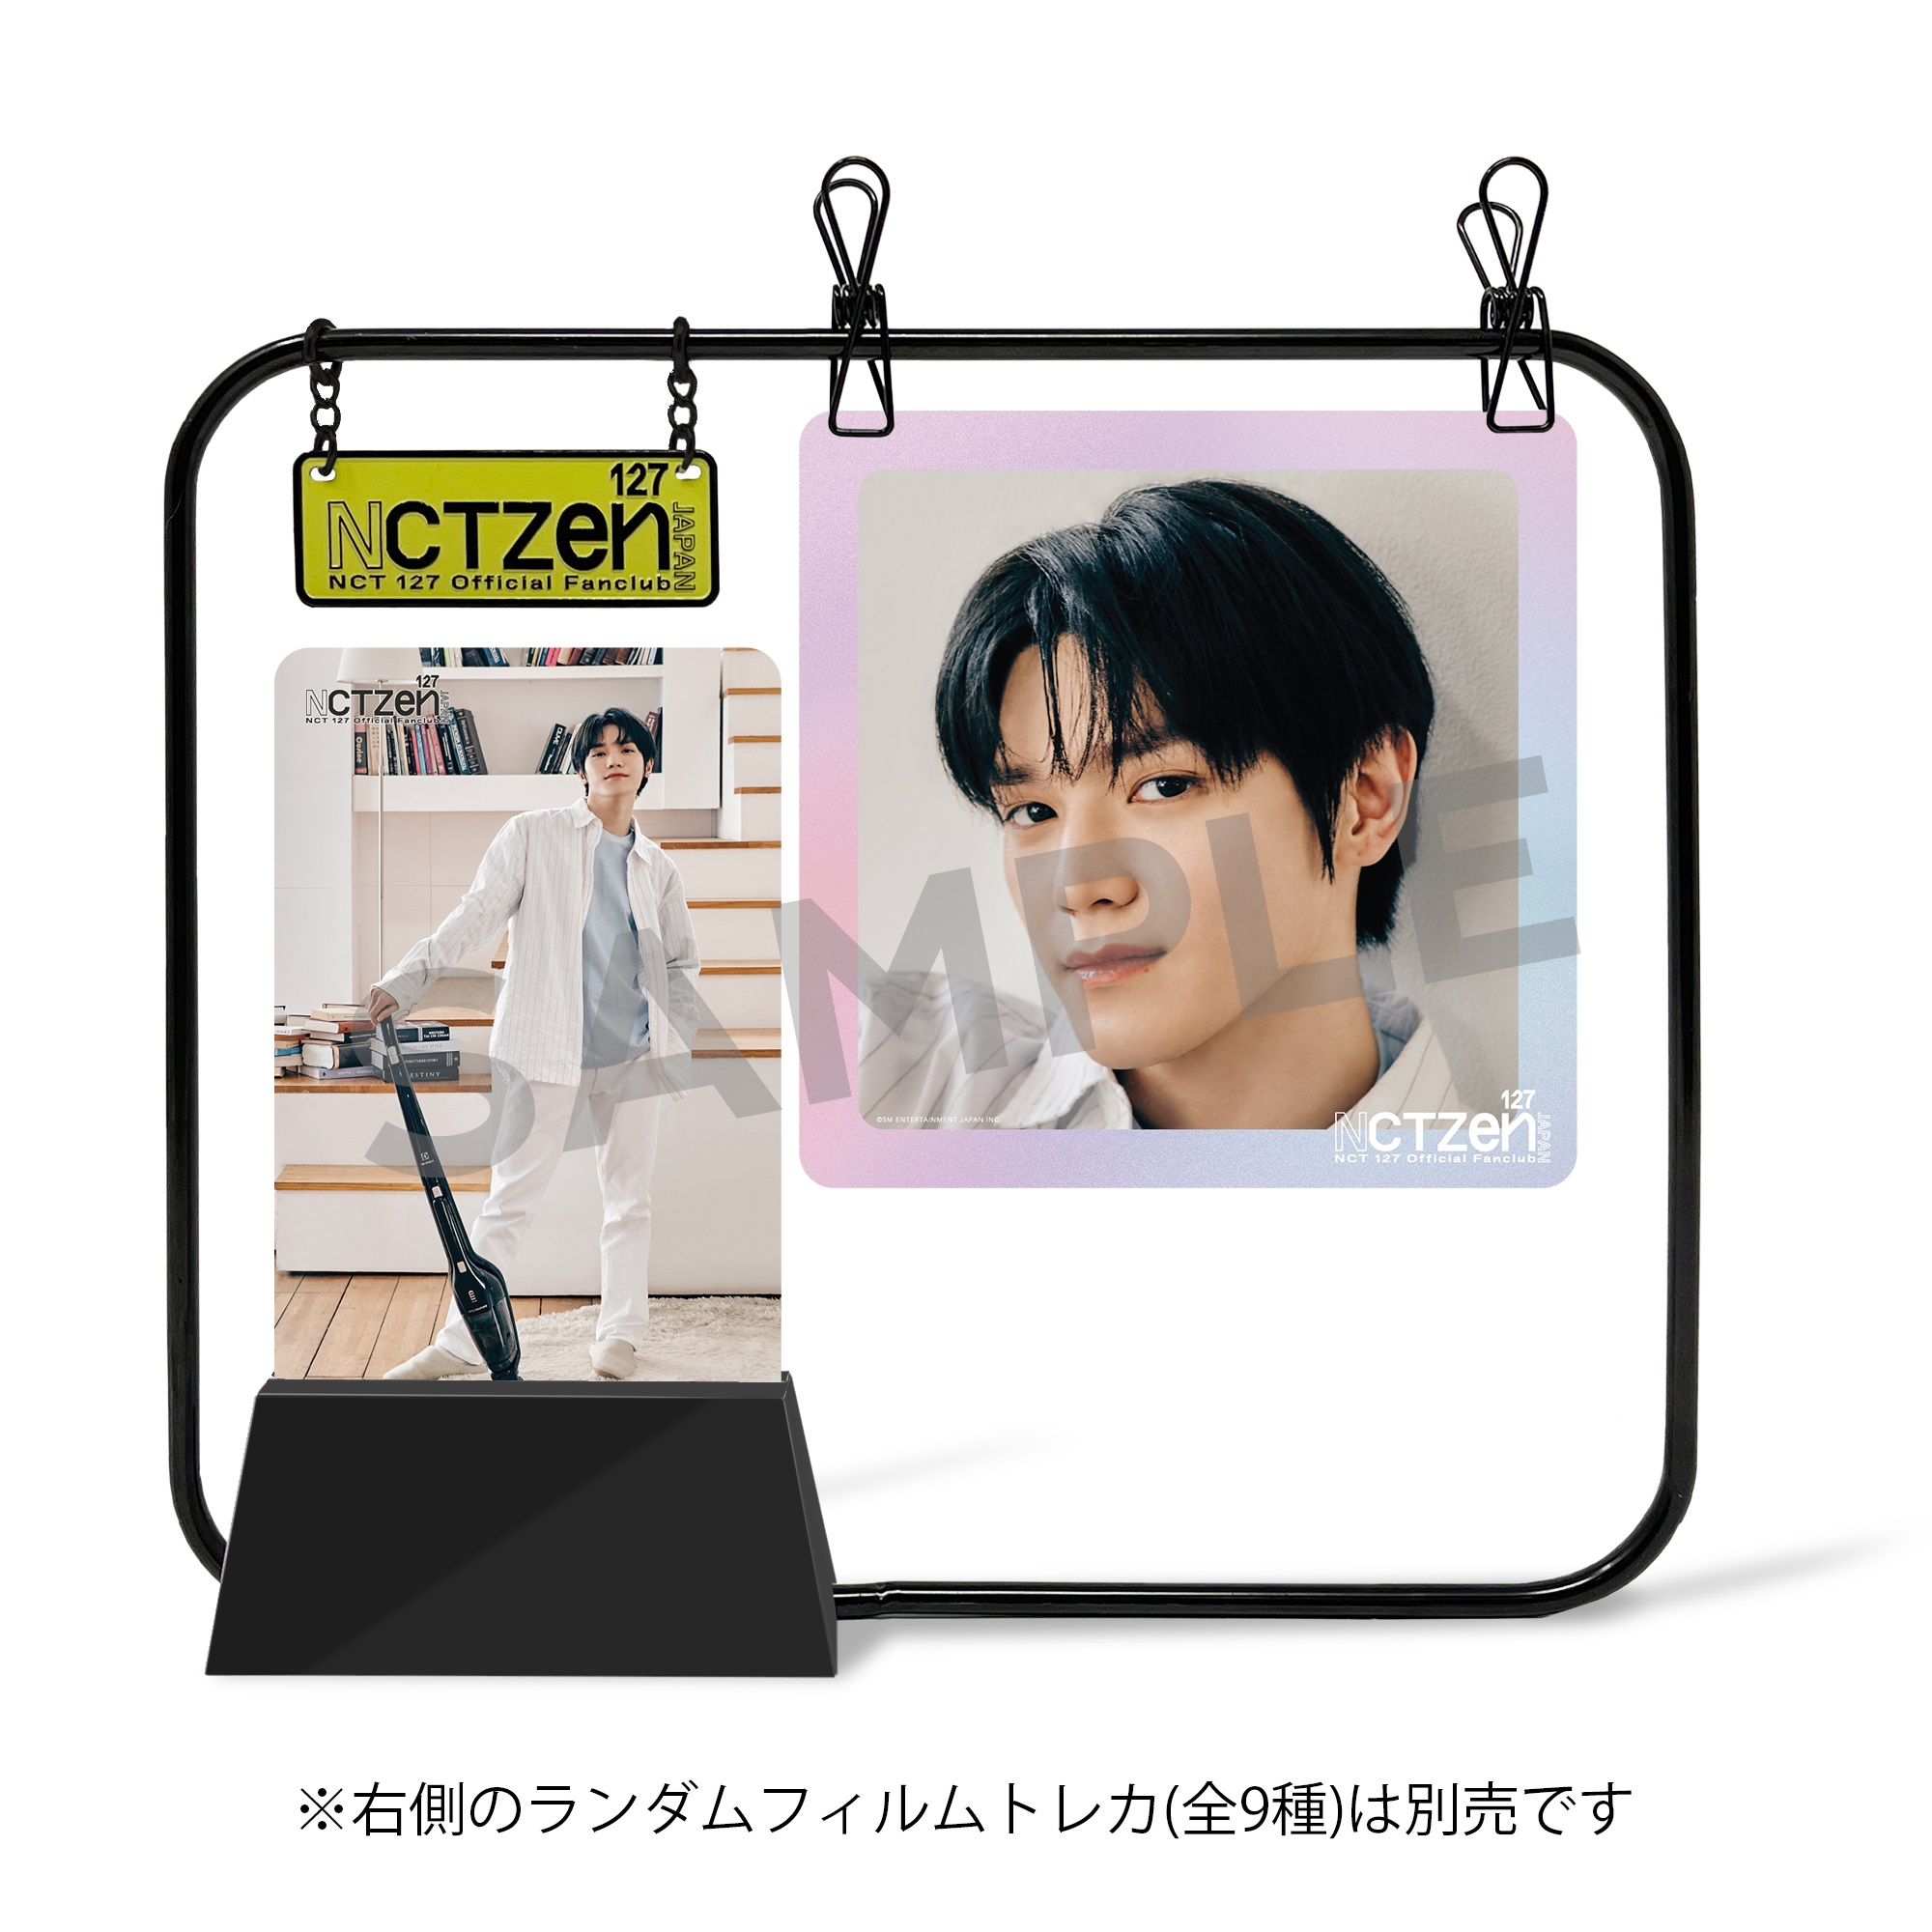 【NCT 127】『NCT 127 OFFICIAL BOOK Vol.4』グッズを、メンバー別に詳しく紹介!_4_3